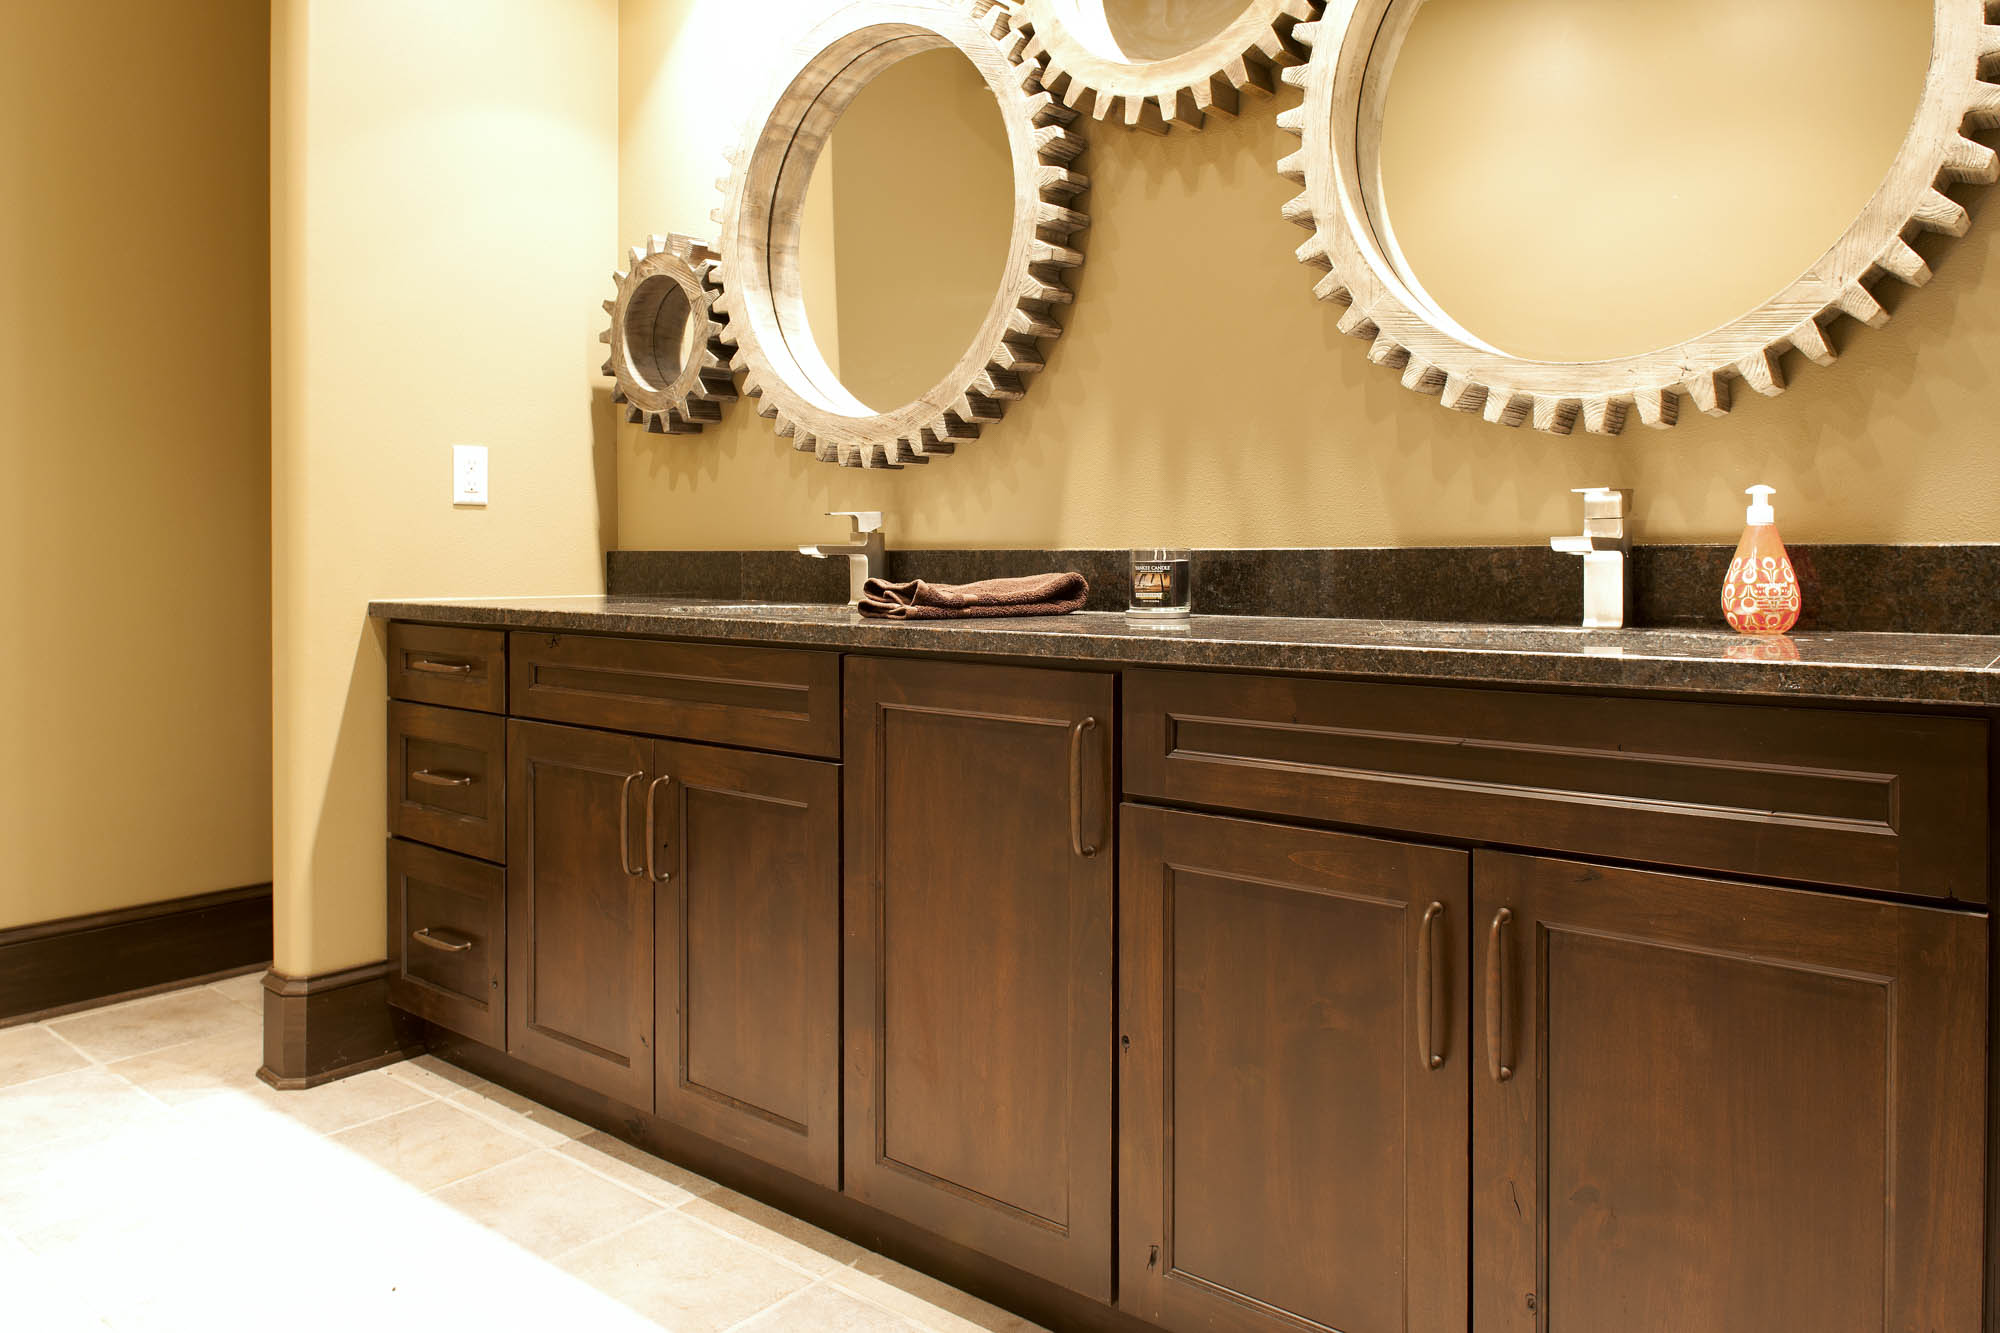 Stained guest bathroom 2 vanity in Distressed Coffee with Ebony Glaze by Showplace Cabinetry